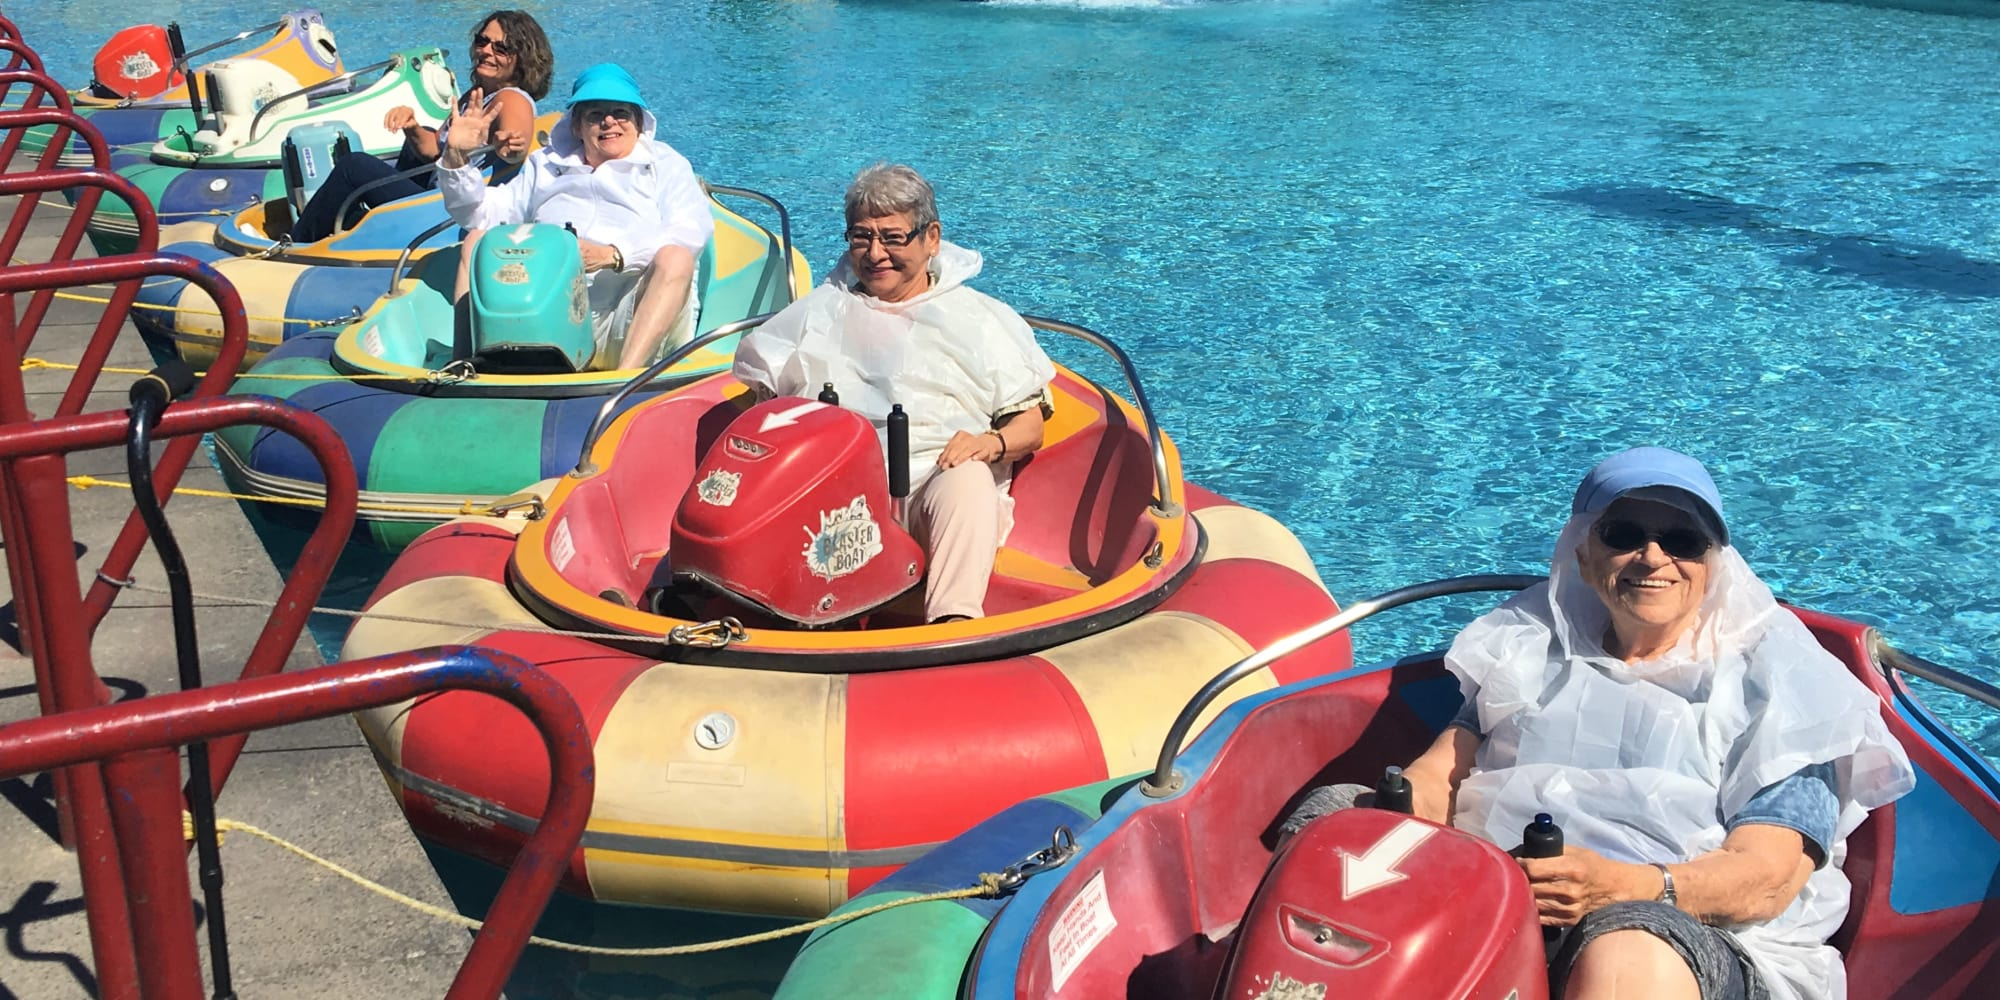 Residents from Hessler Heights Gracious Retirement Living in Leesburg, Virginia on a water ride